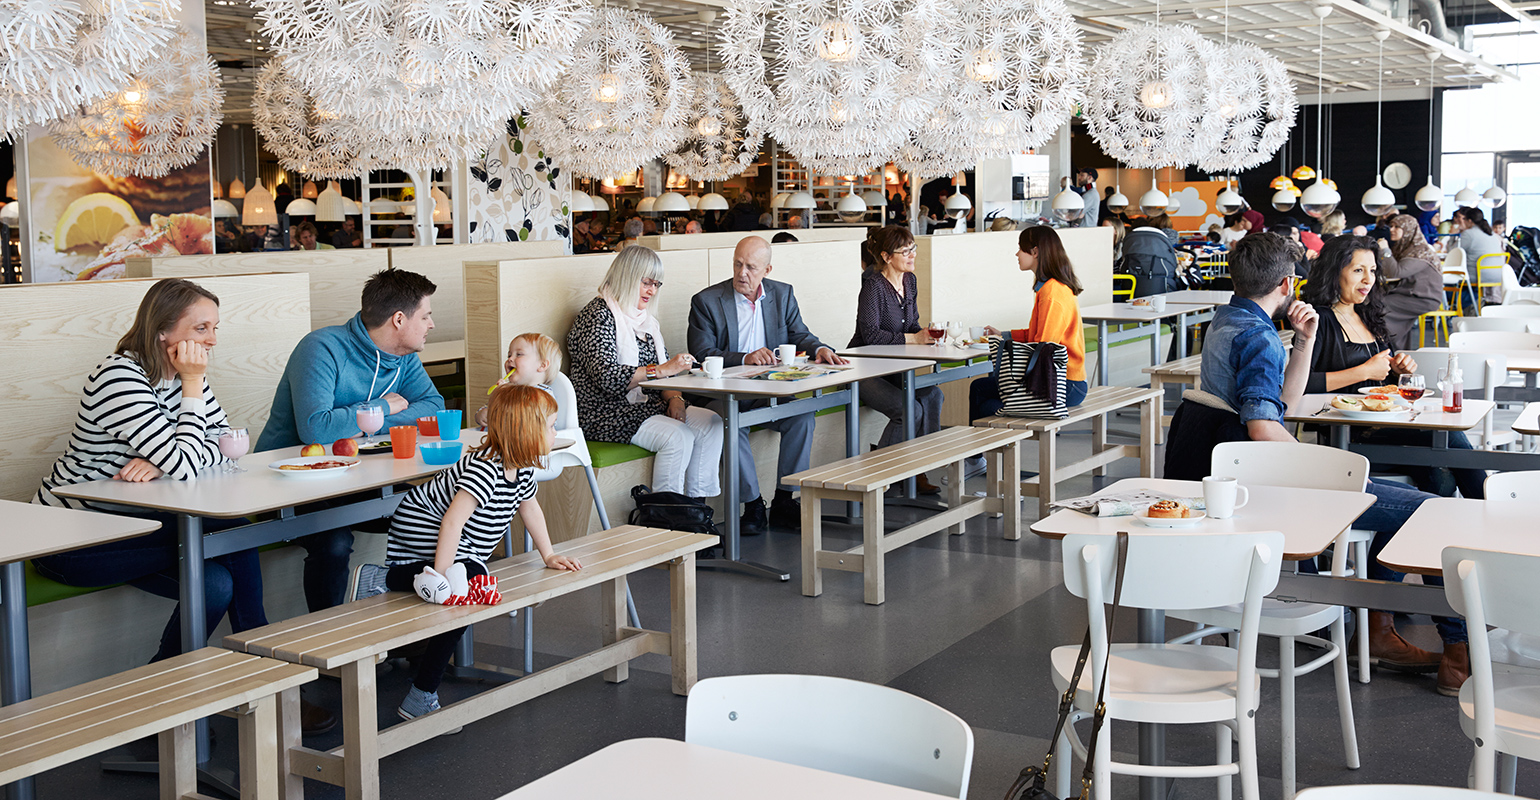 ikea restaurants offer house prepped food and customer On ikea san francisco delivery